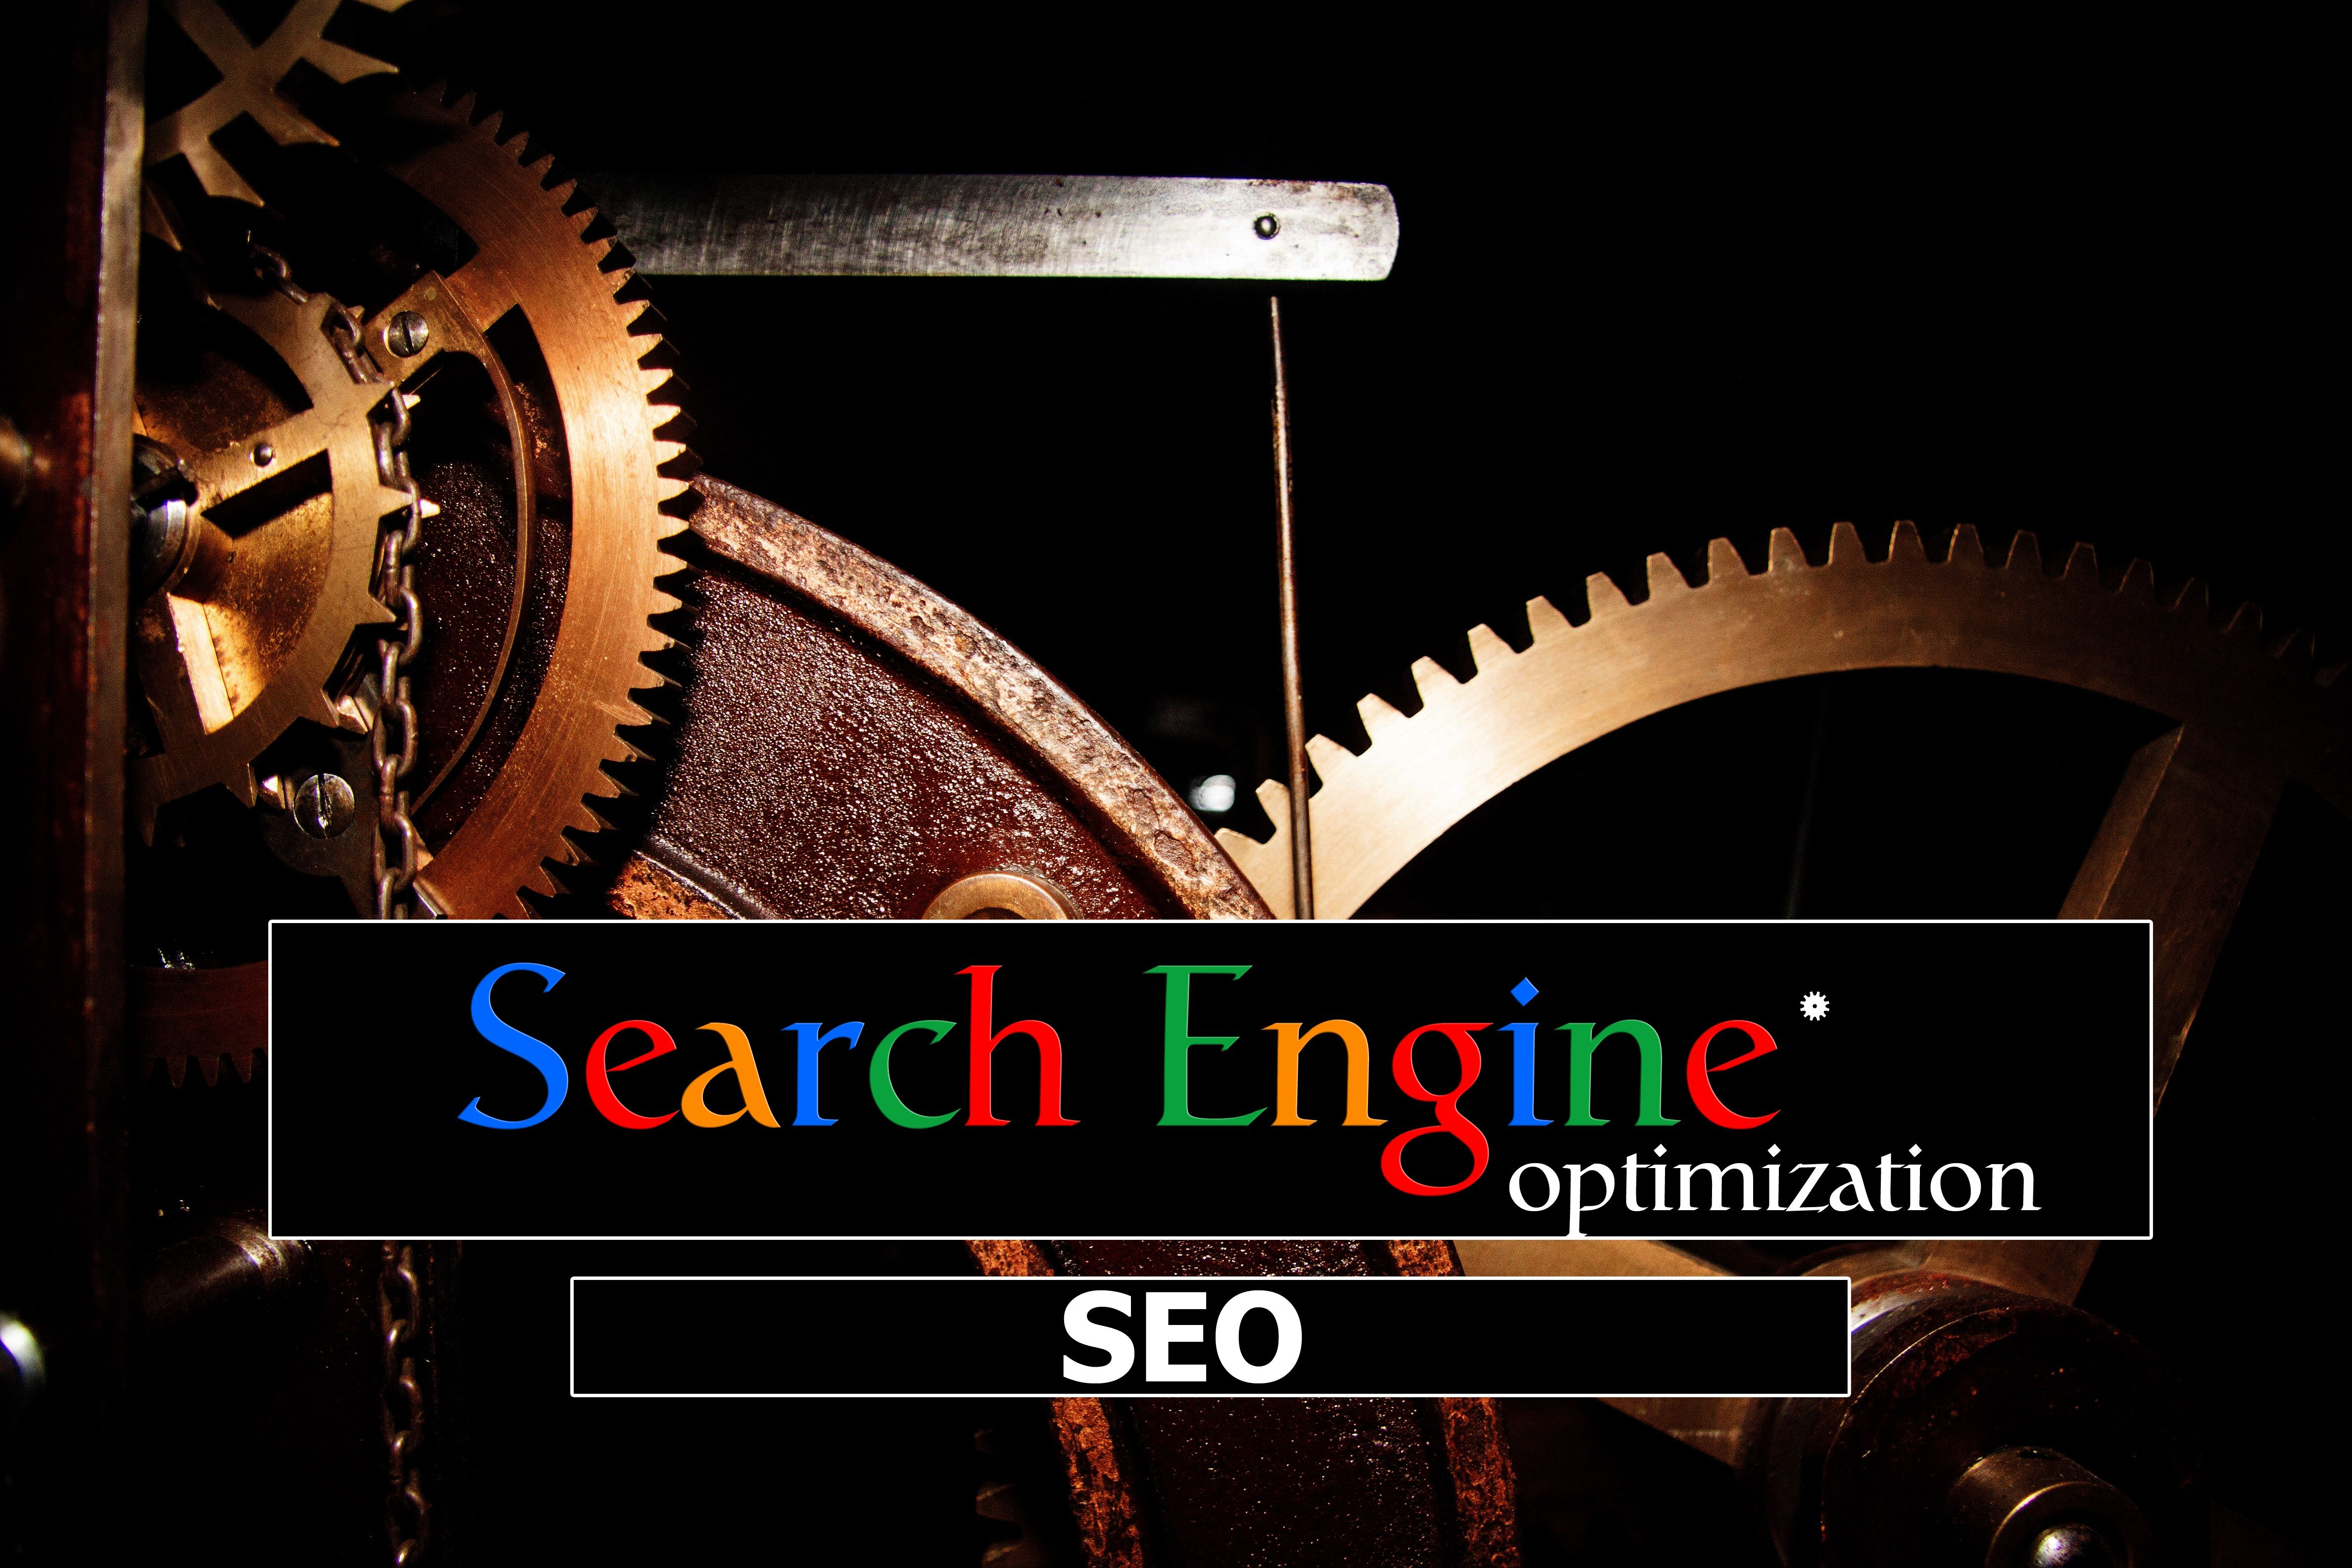 SEO or so-called Search Engine Optimization involves all strategies and tactics to ensure that a website or web service will be found by search engines.